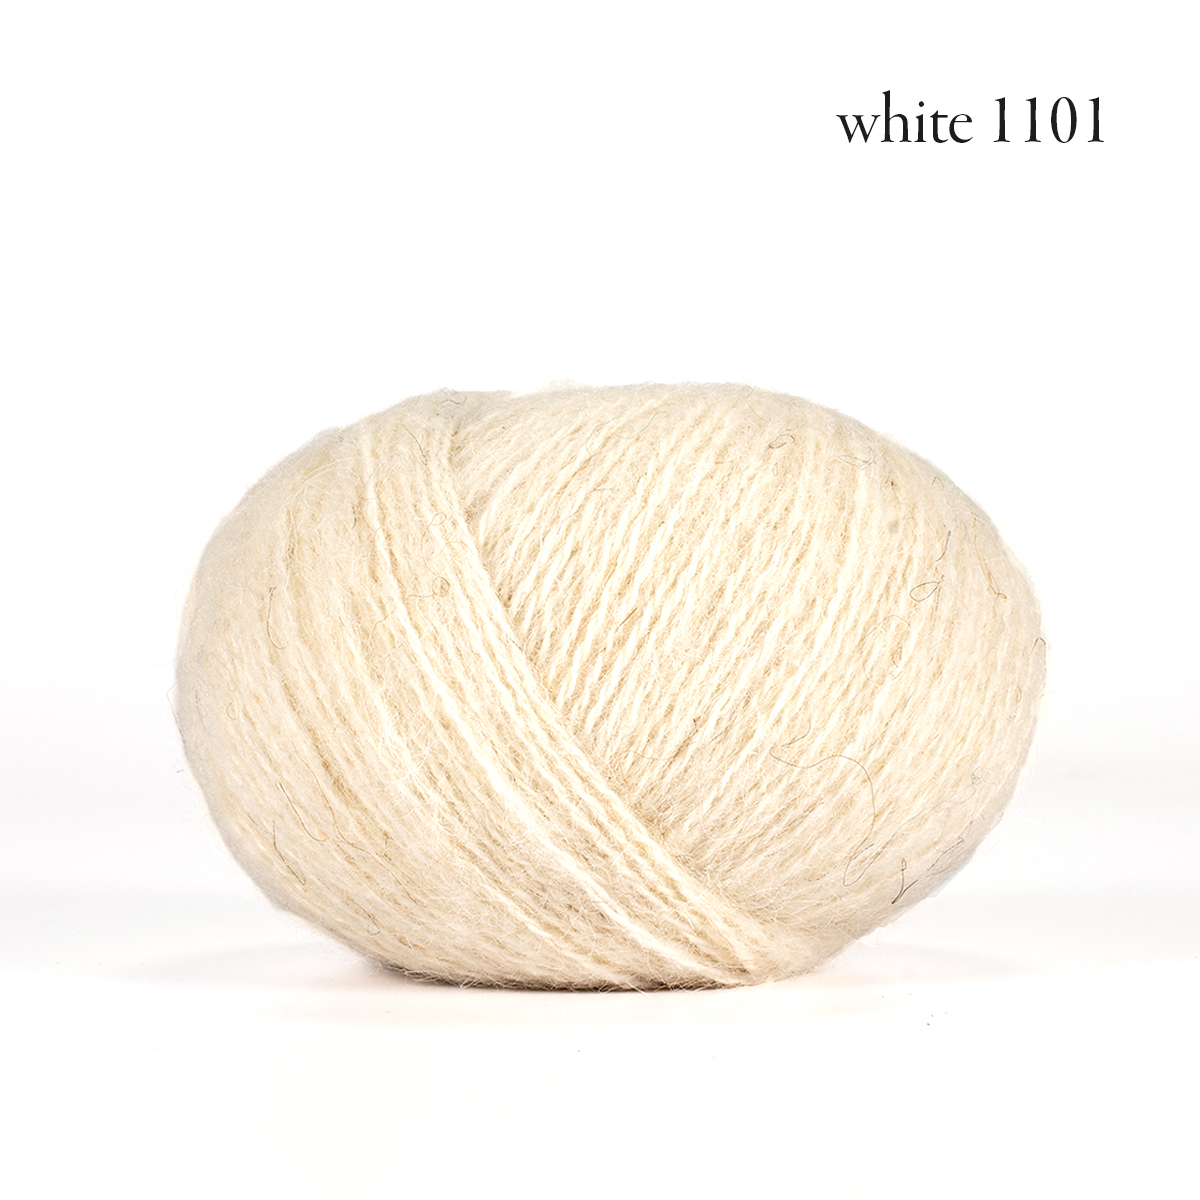 brushed tradition white 1101.jpg